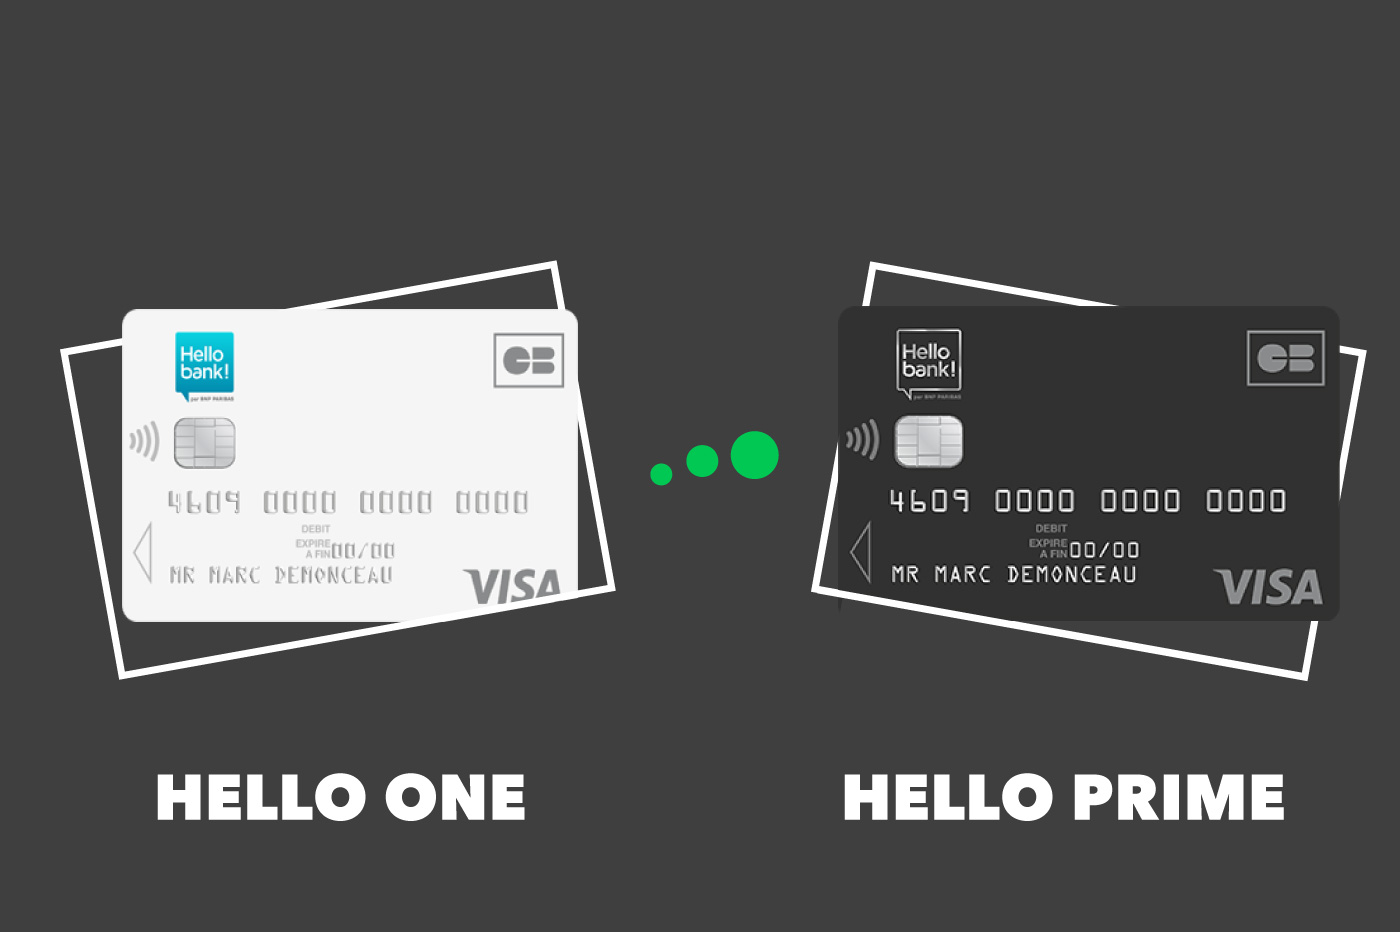 Comparatif Hello One vs Hello Prime